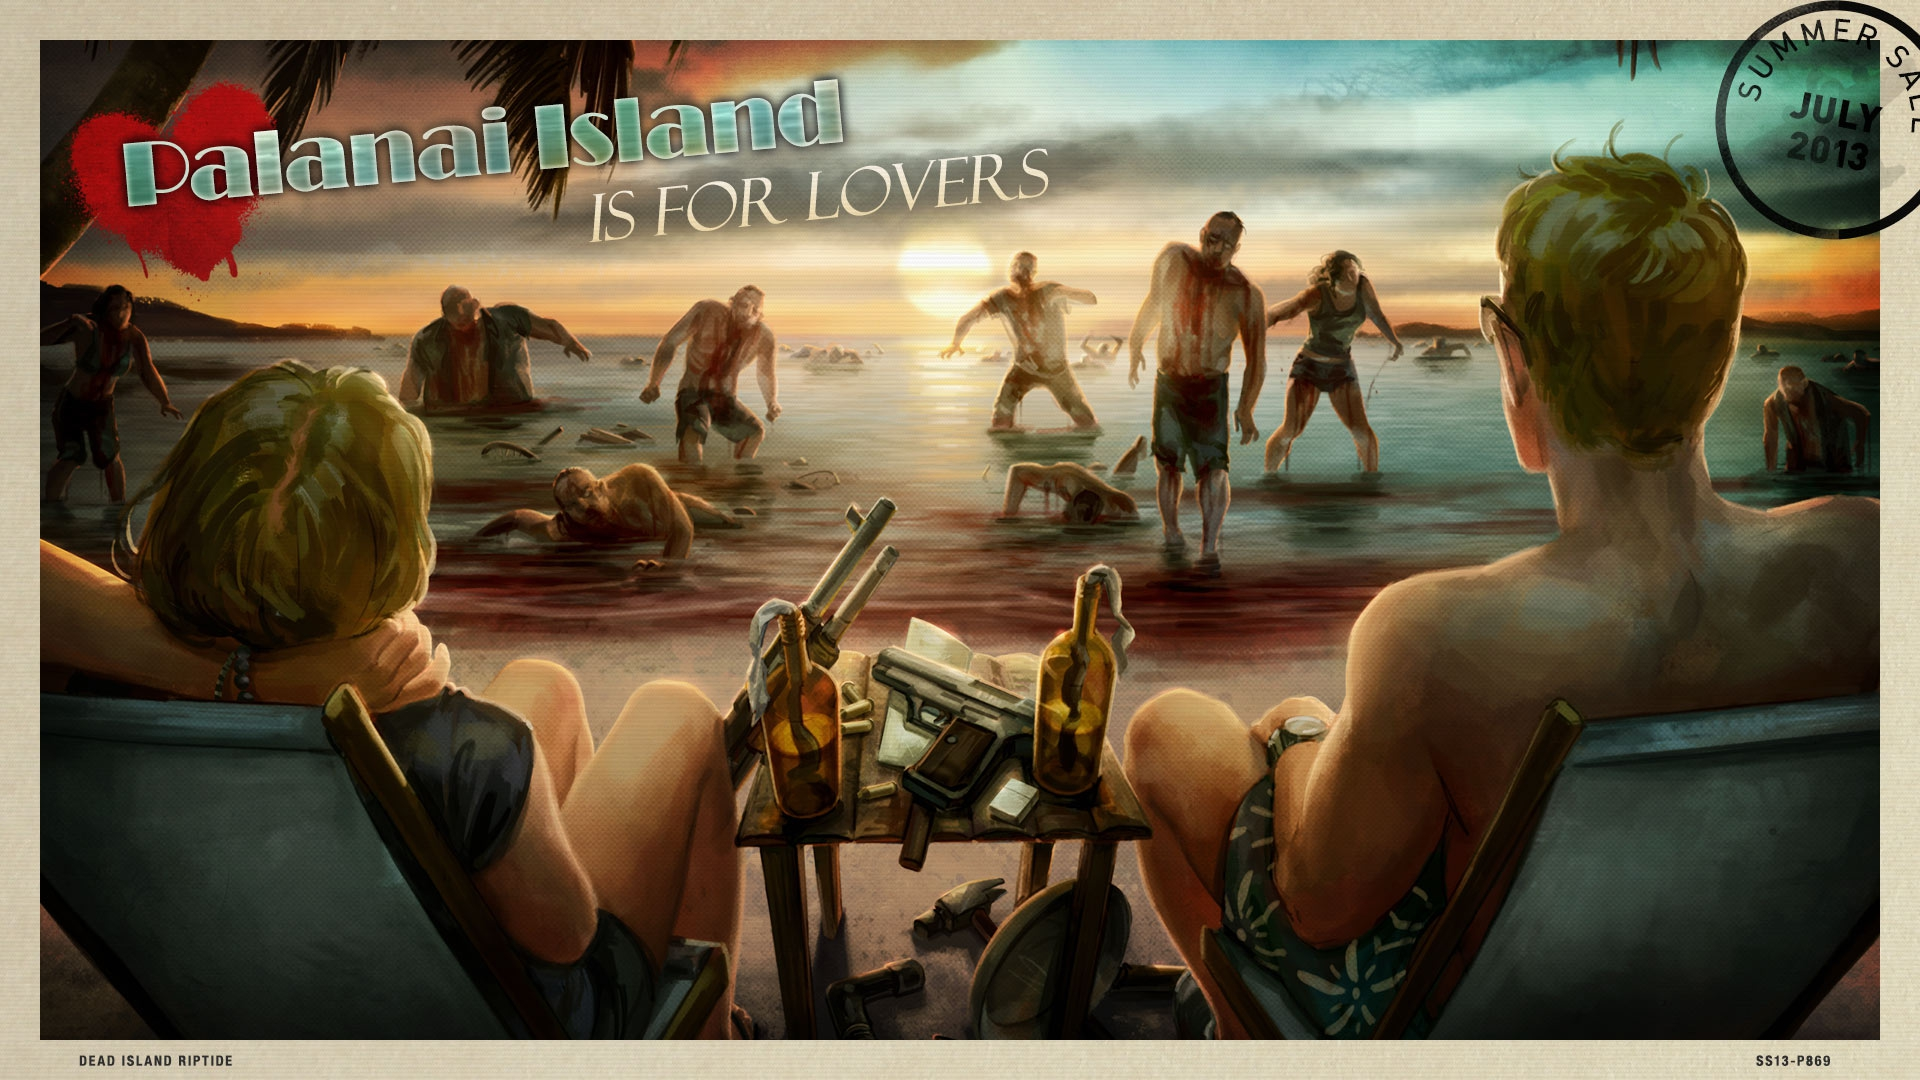 With The Tide Dead Island Riptide